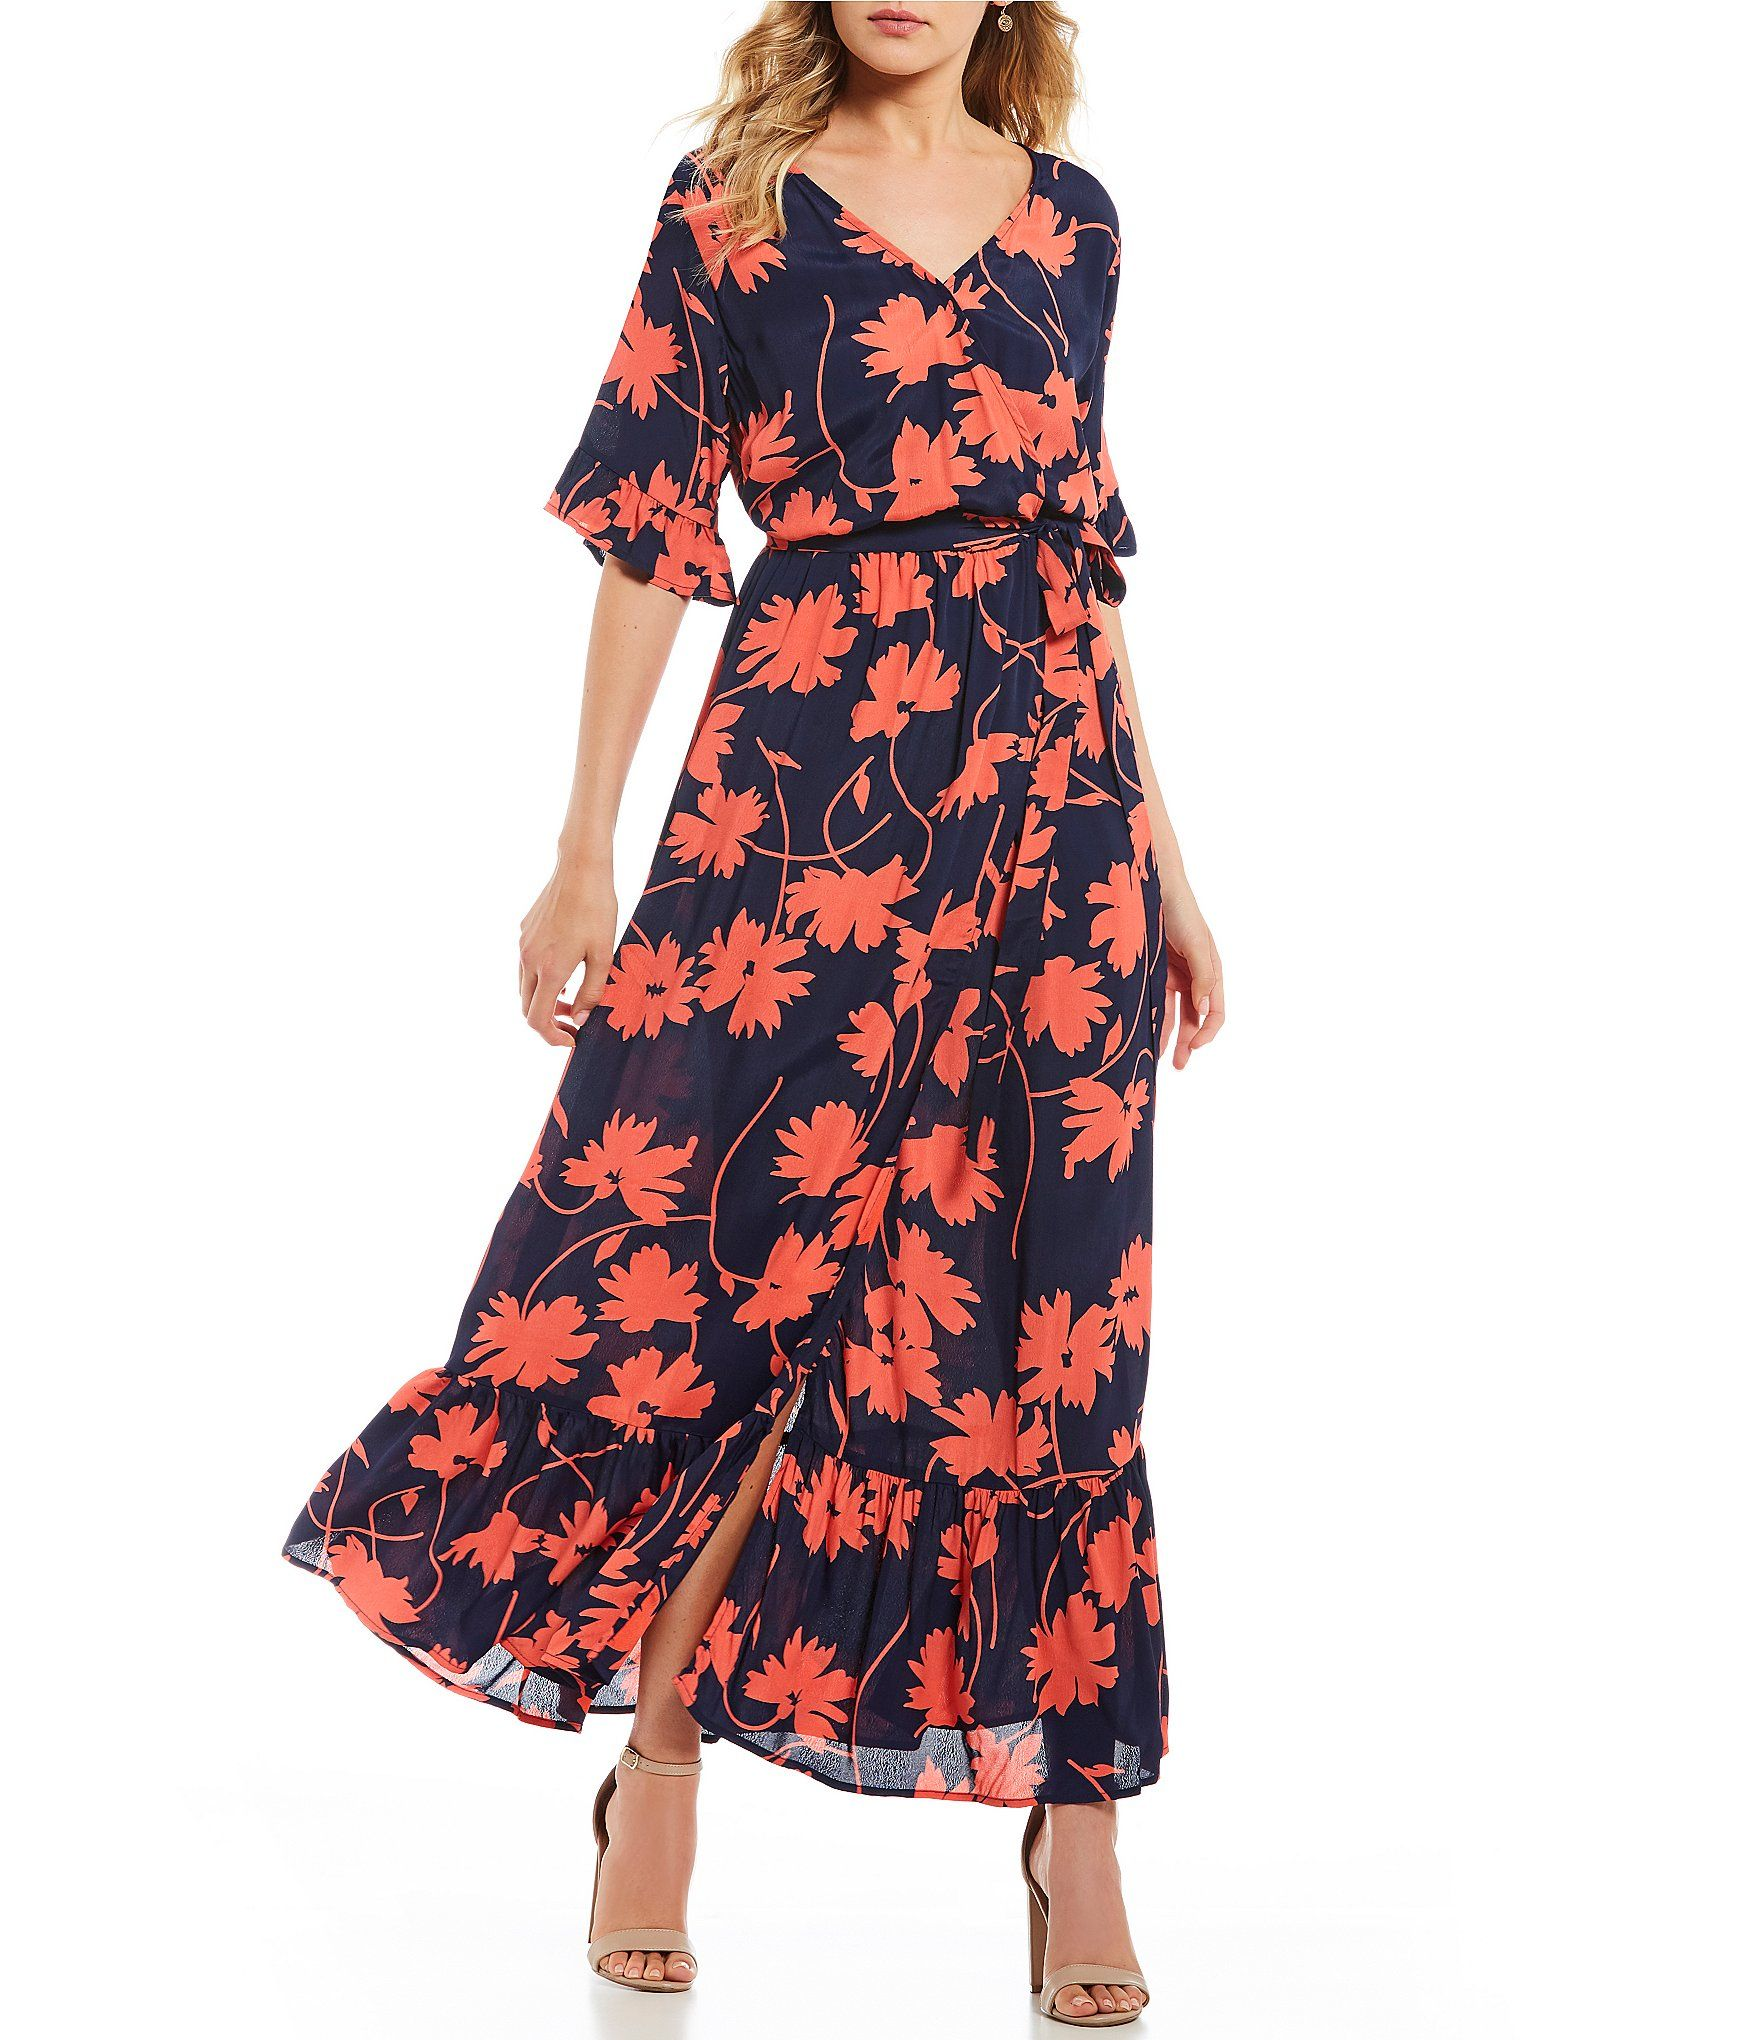 dea2aefc21 Shop for Lucy Love Floral Print Enchanted Wrap Dress at Dillards.com. Visit  Dillards.com to find clothing